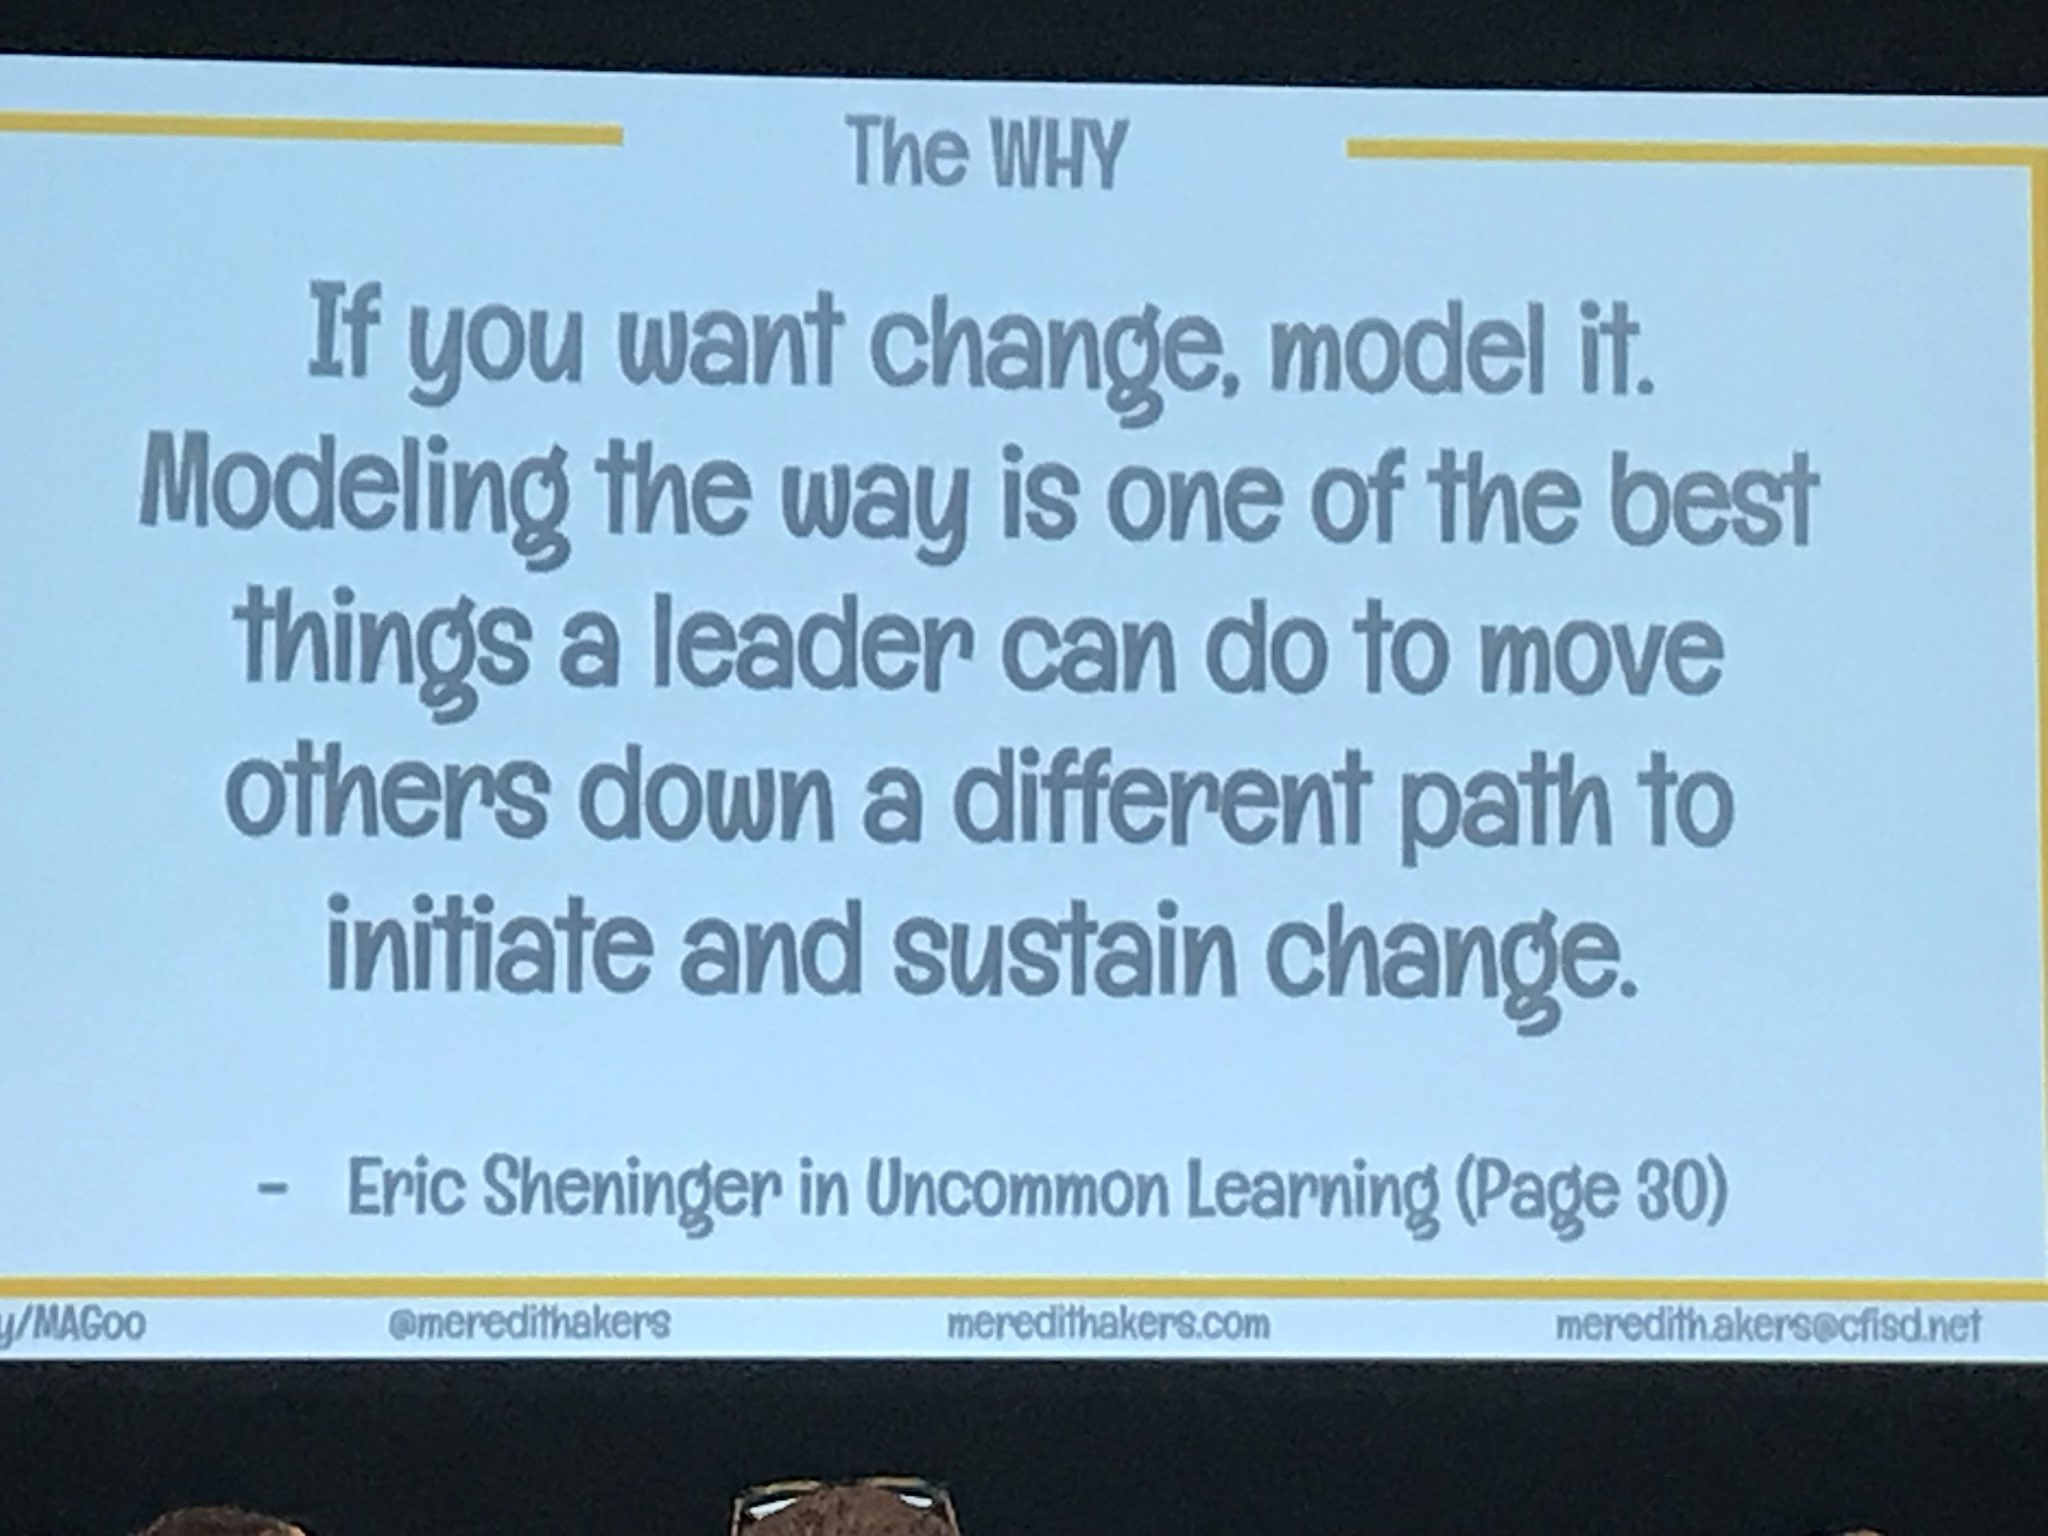 So refreshing to hear Technology sessions led by Admin. Lead learners are SO important. Kudos Meredith Akers! @meredithakers #iste2018 https://t.co/0H0RHBkHJ6